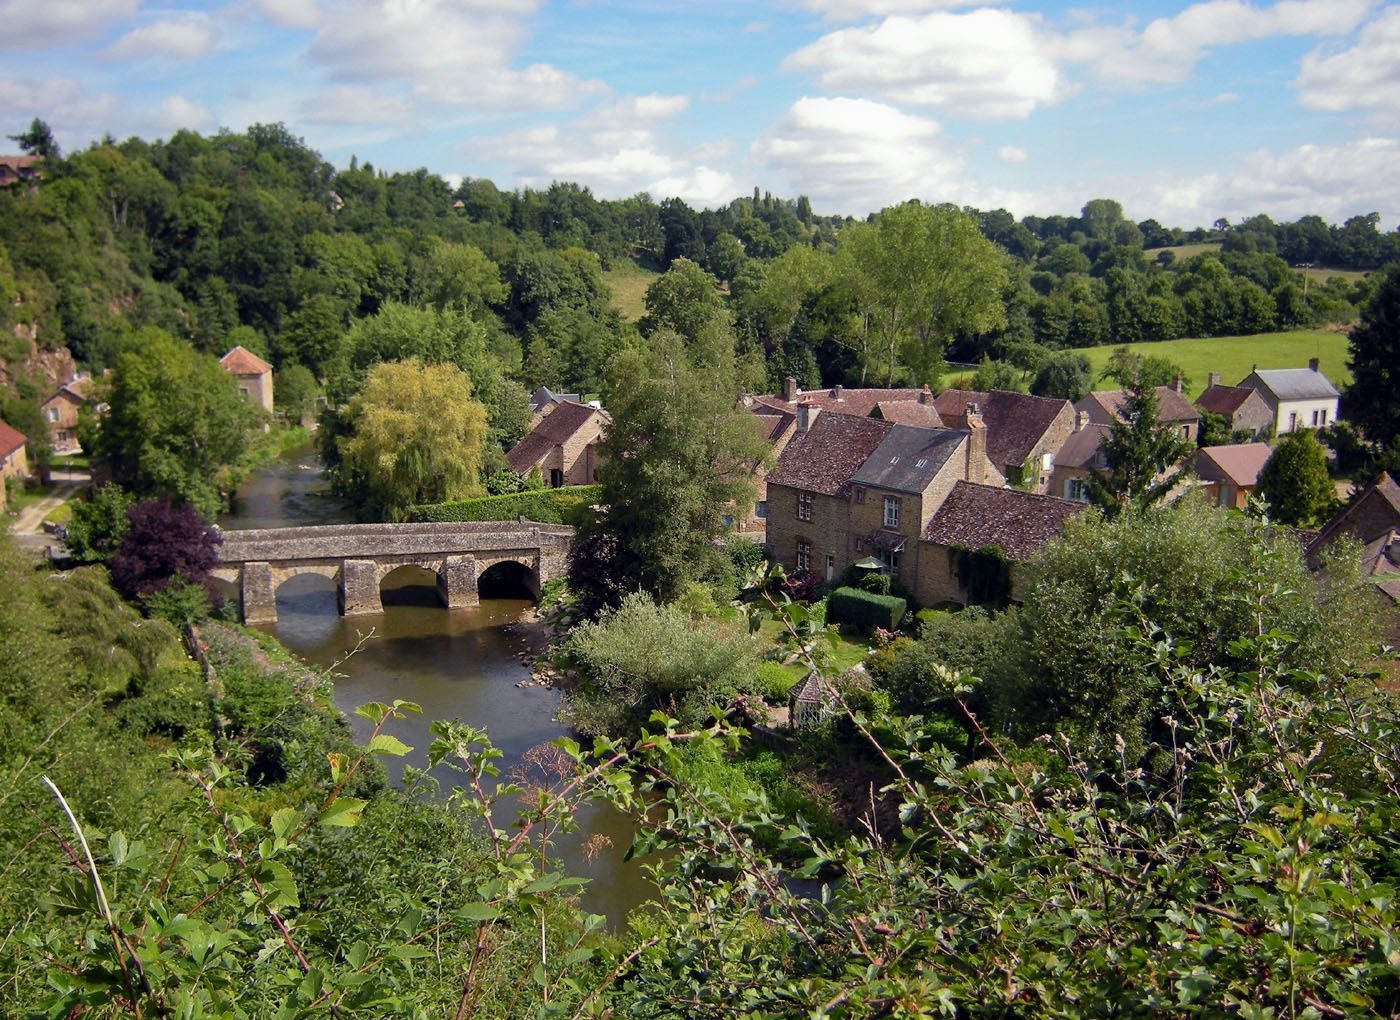 Village de Saint-Ceneri-le-Gerei. (photo rediffusée)